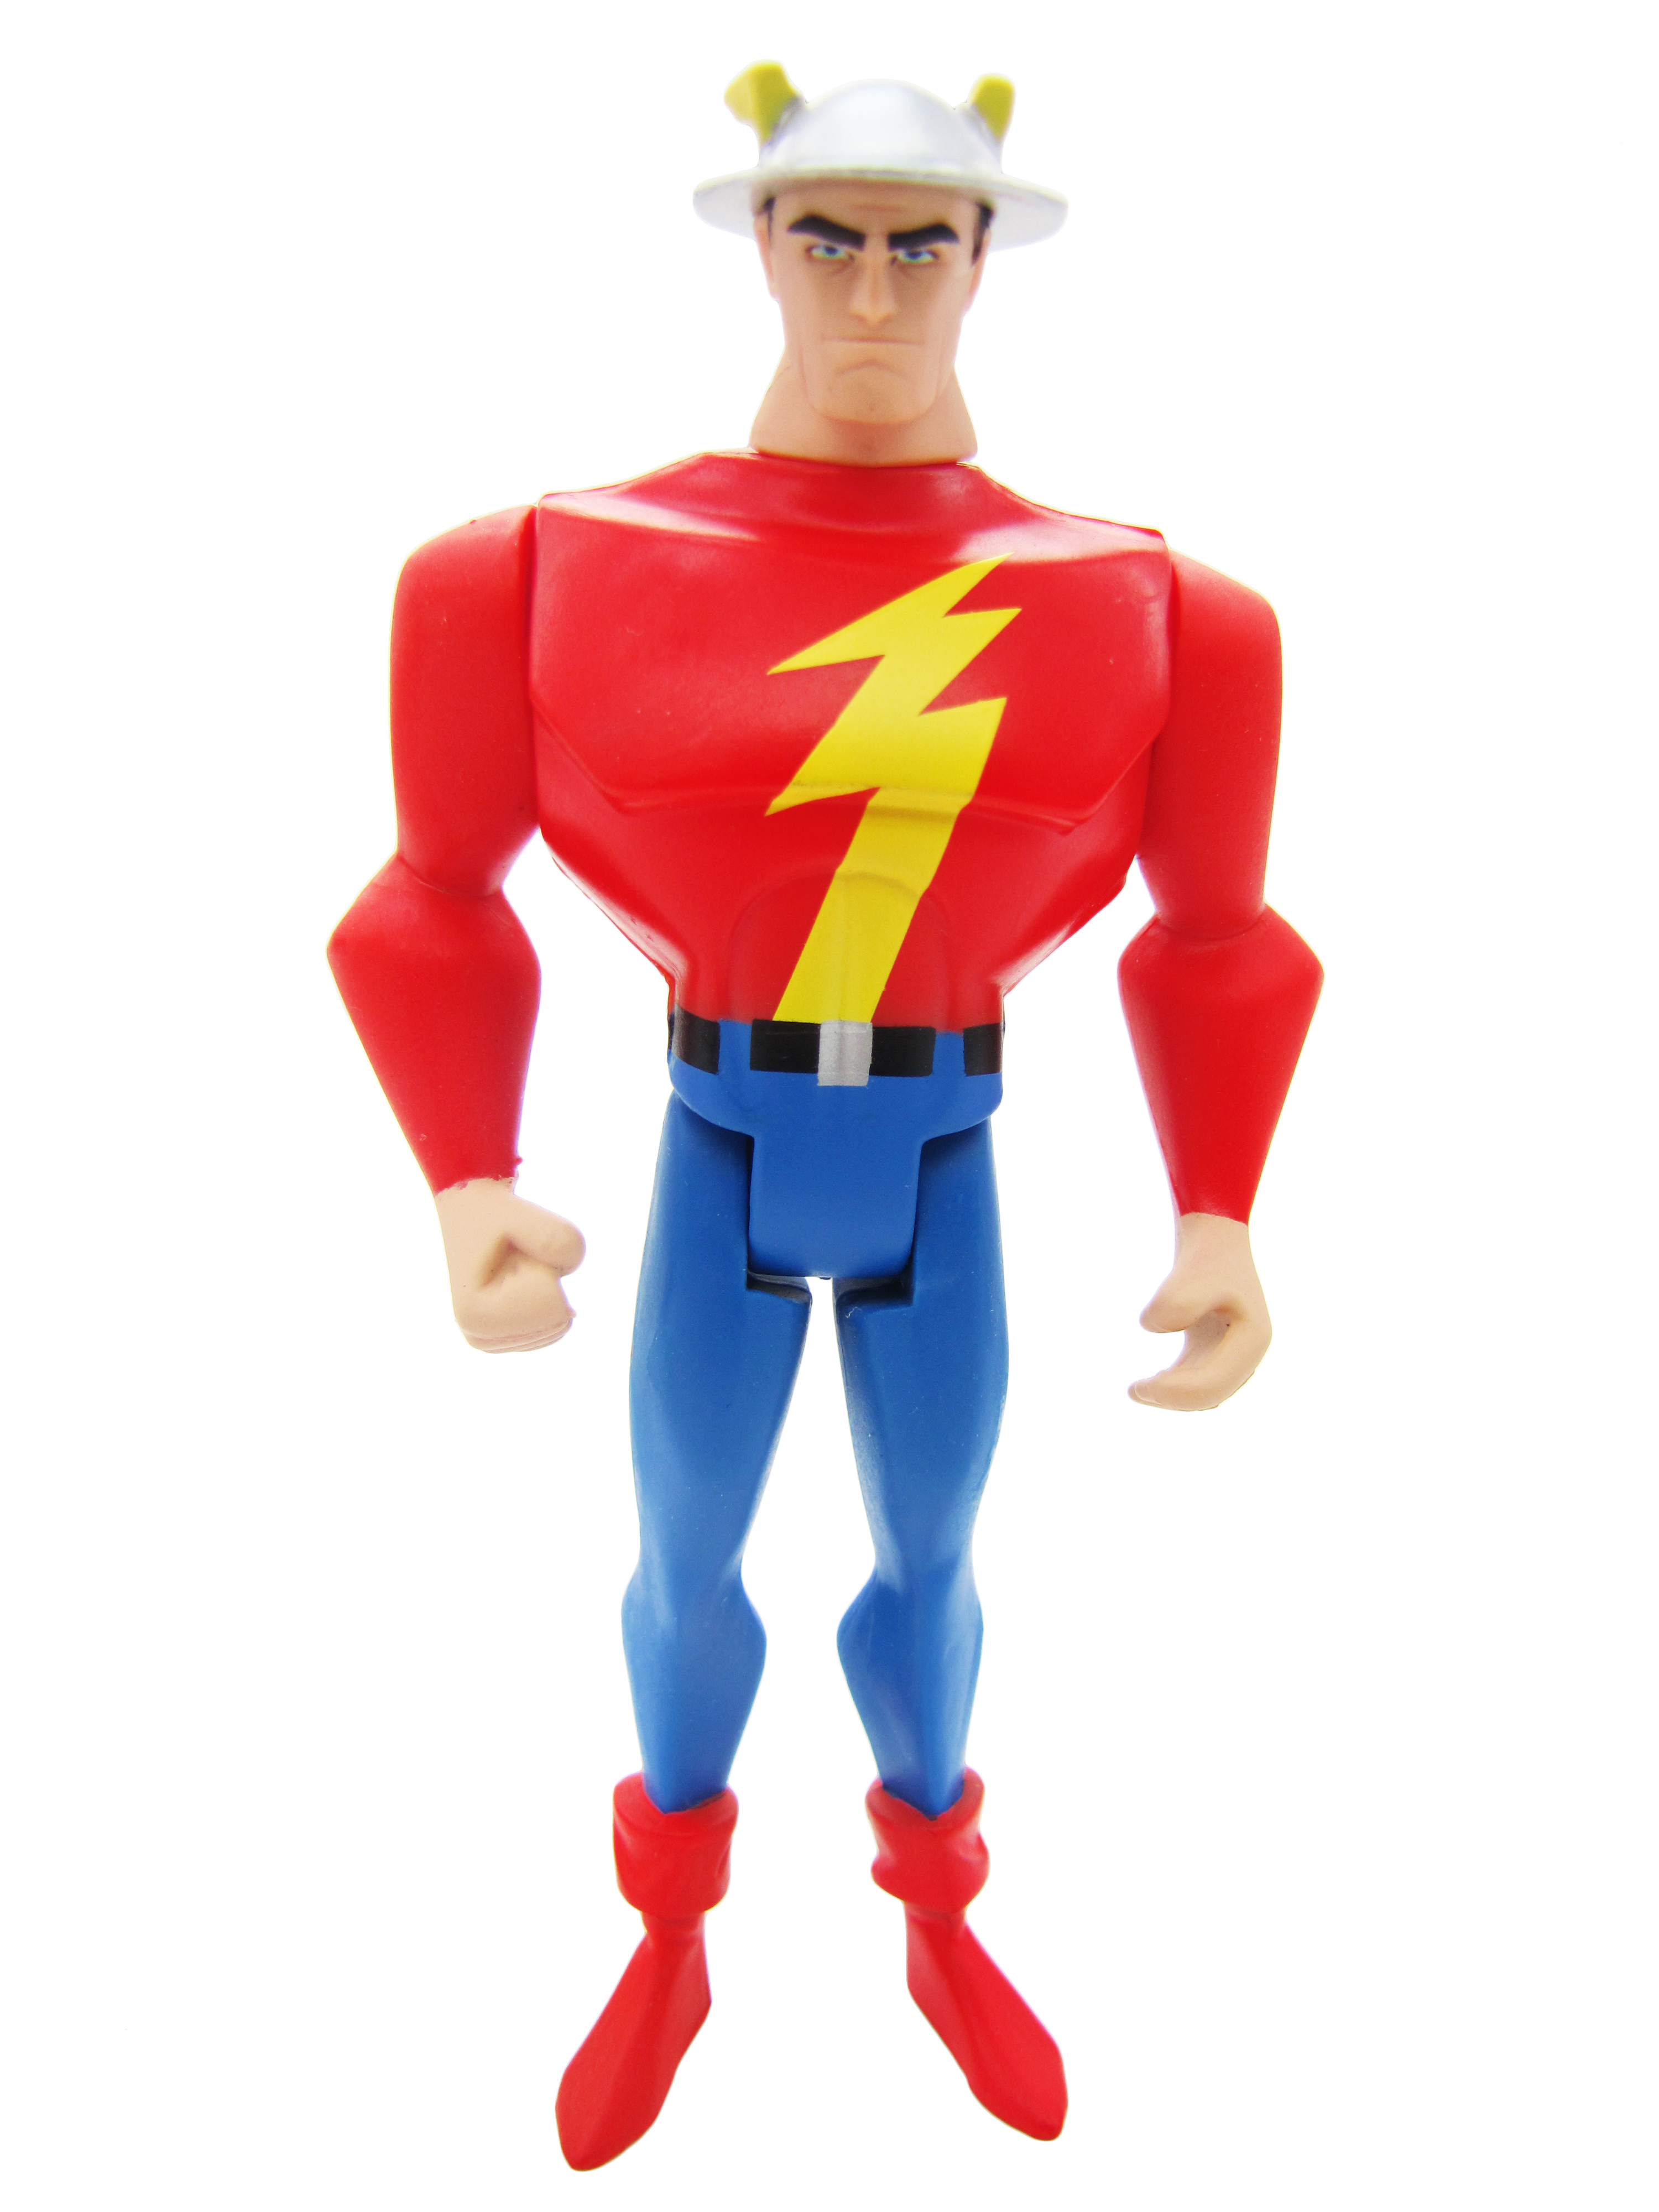 2011 Justice League Unlimited MATTY COLLECTOR GOLDEN AGE 3 PACK THE FLASH Mint